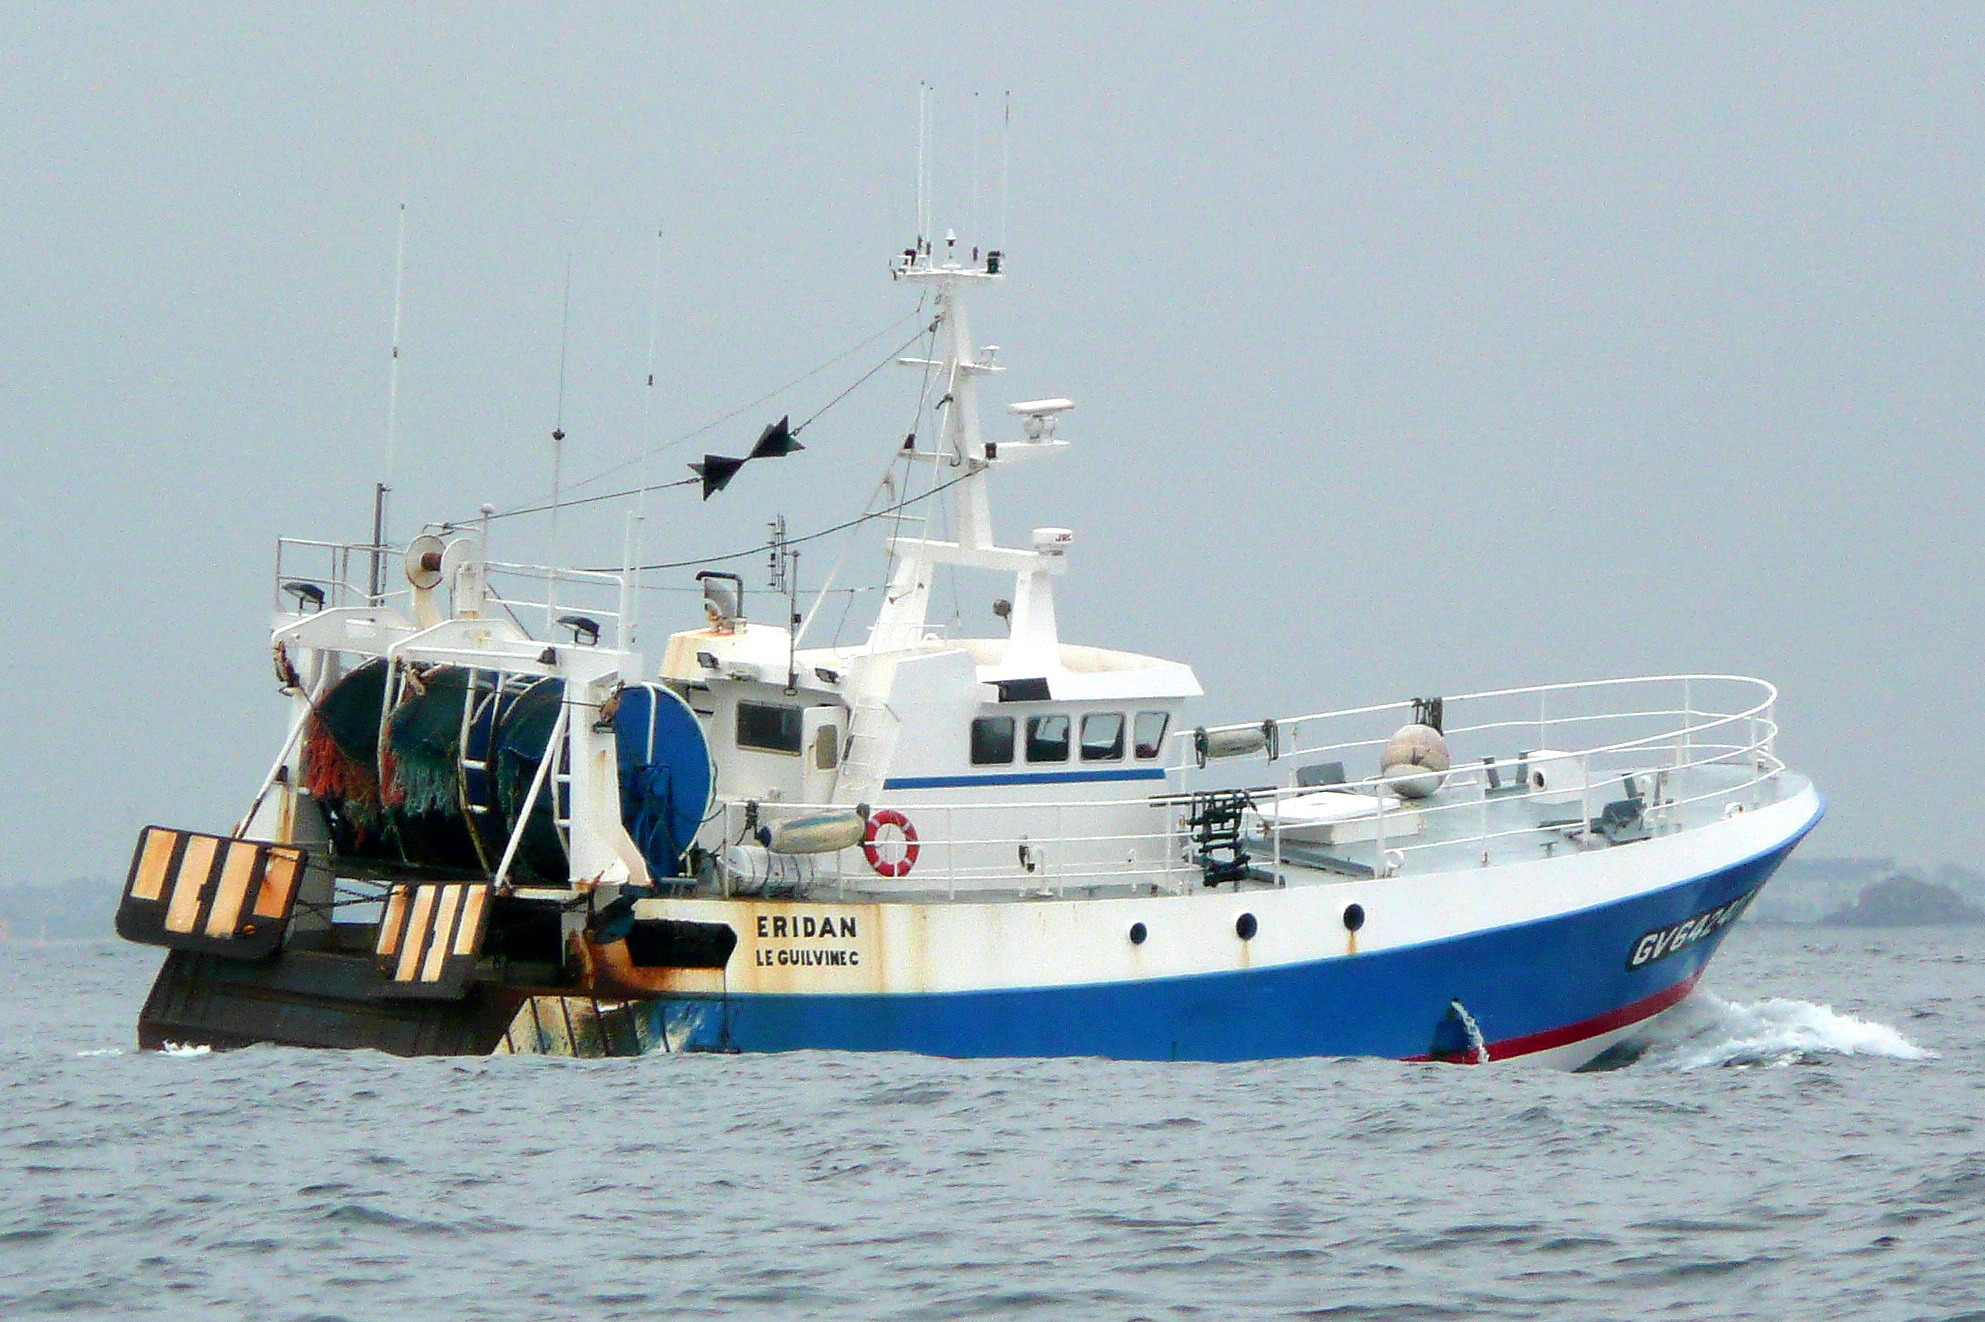 A fishing trawler from Le Guilvinec.